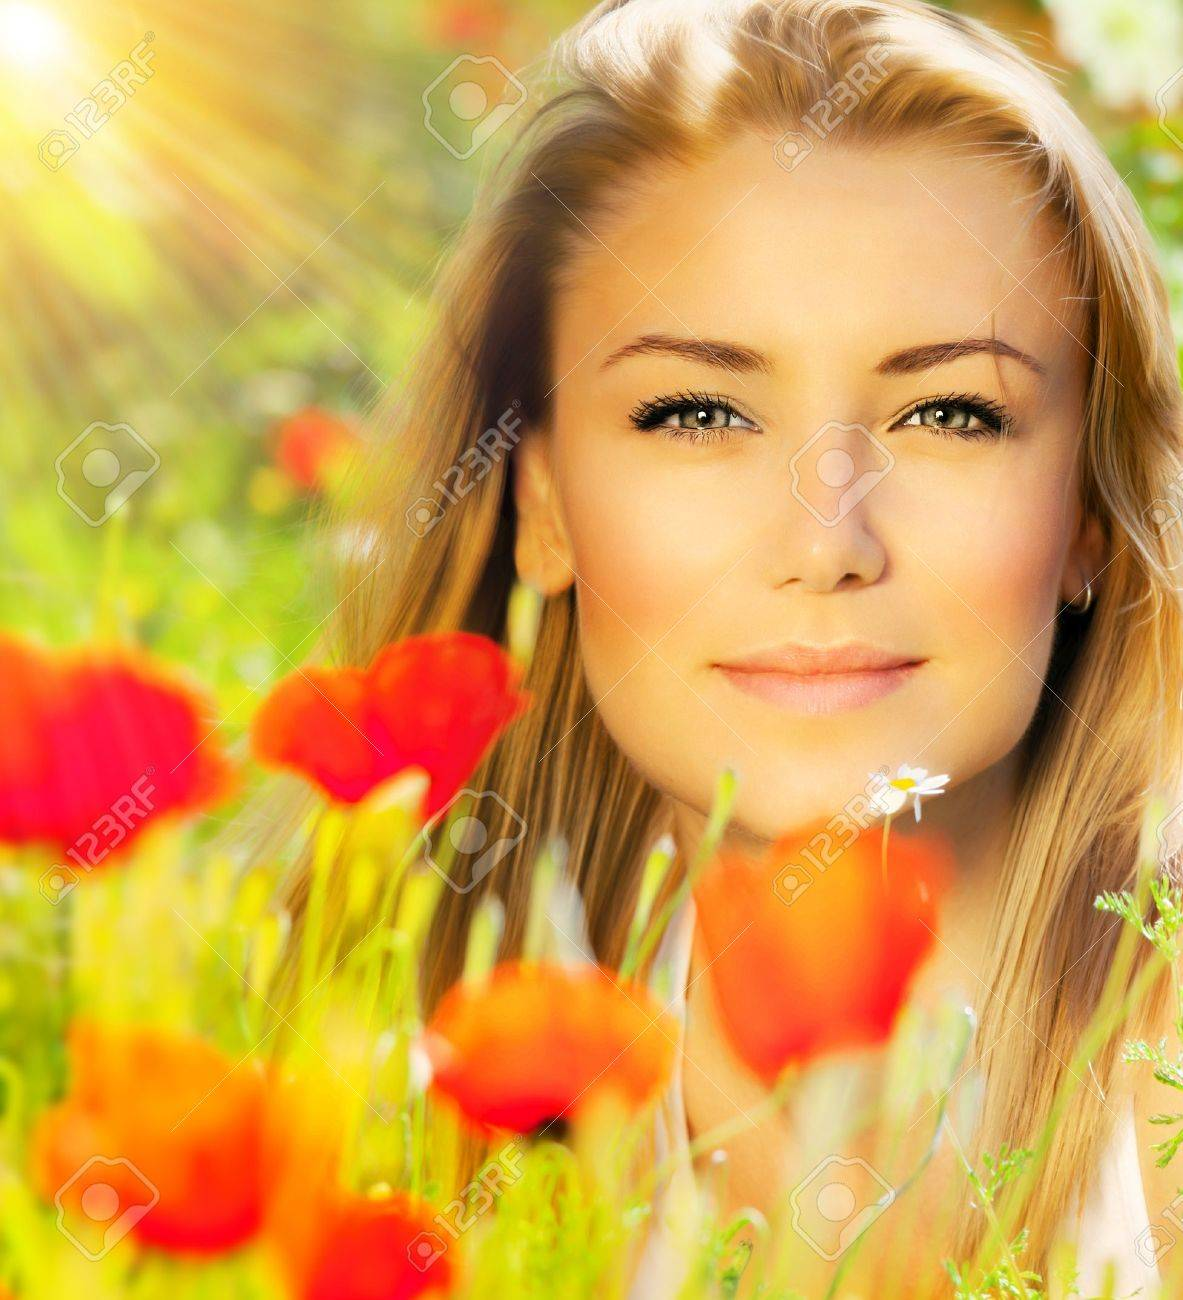 Closeup on beautiful woman face, female enjoying flower field, lovely girl at spring outdoor vacation, nice model relaxing at floral poppy garden, gorgeous model over natural bakground at sunny day Stock Photo - 12880164